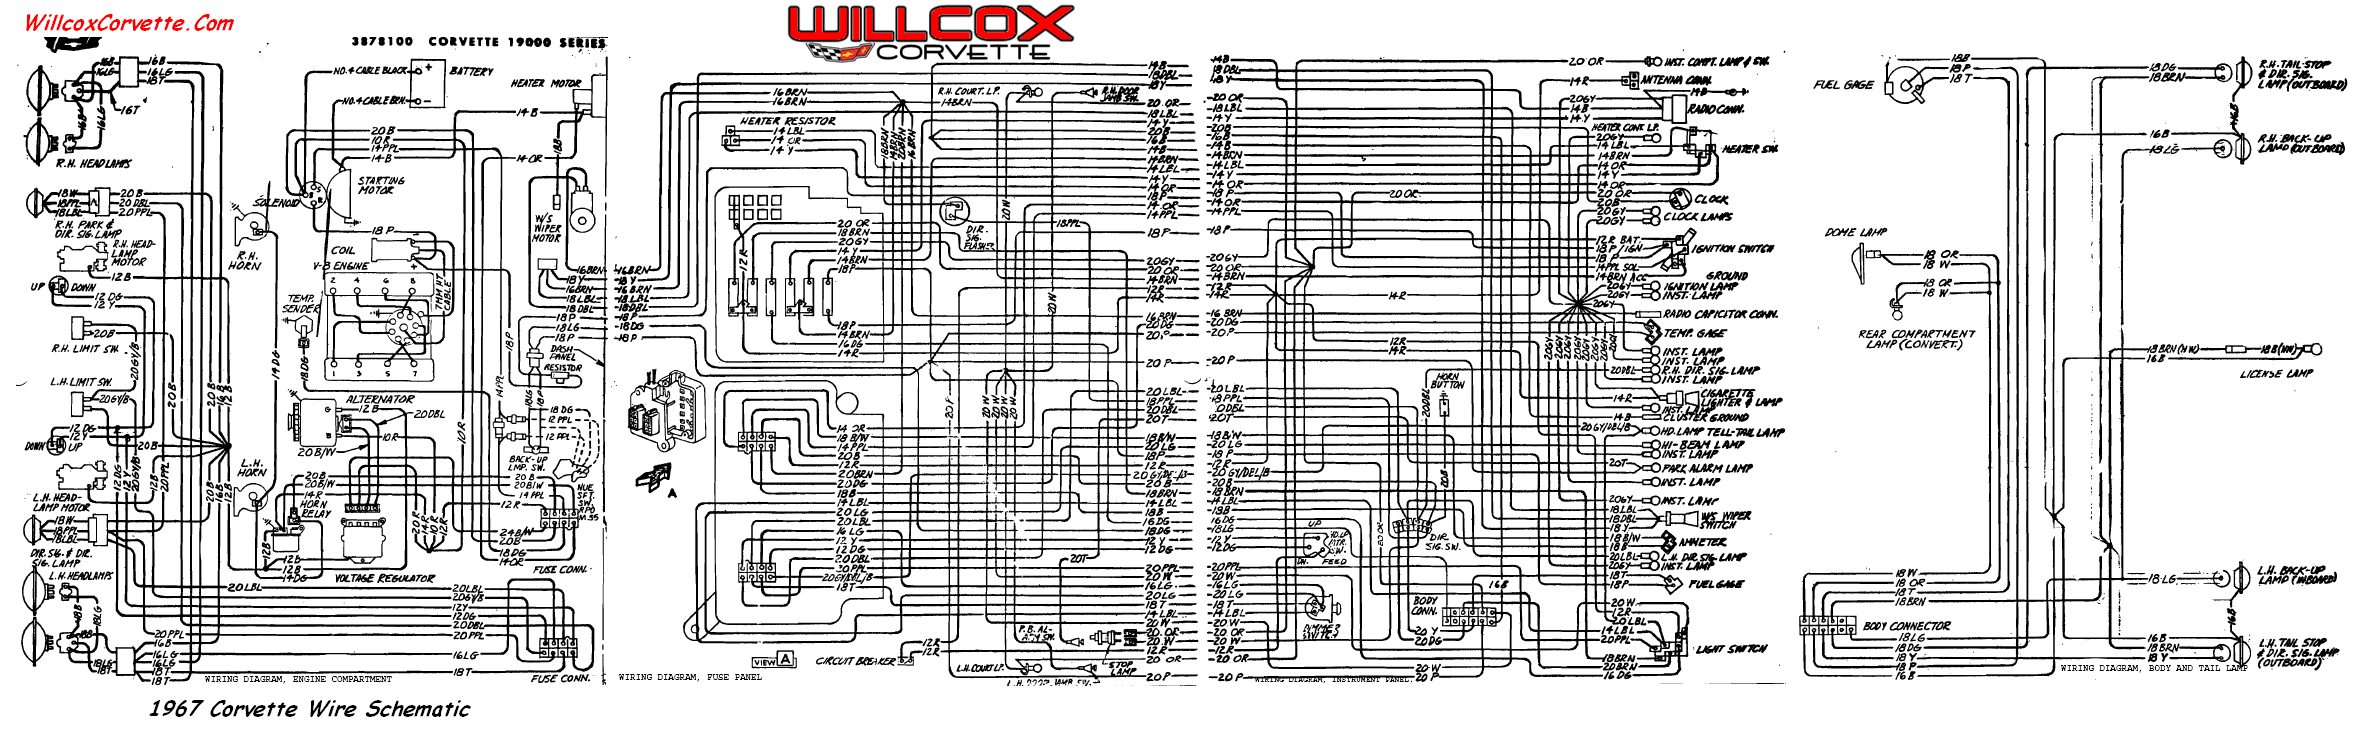 1988 Corvette Ac Wiring Diagram Will Be A Thing 1987 Sportster Circuit 1967 Tracer Schematic Willcox Engine Electrical Diagrams